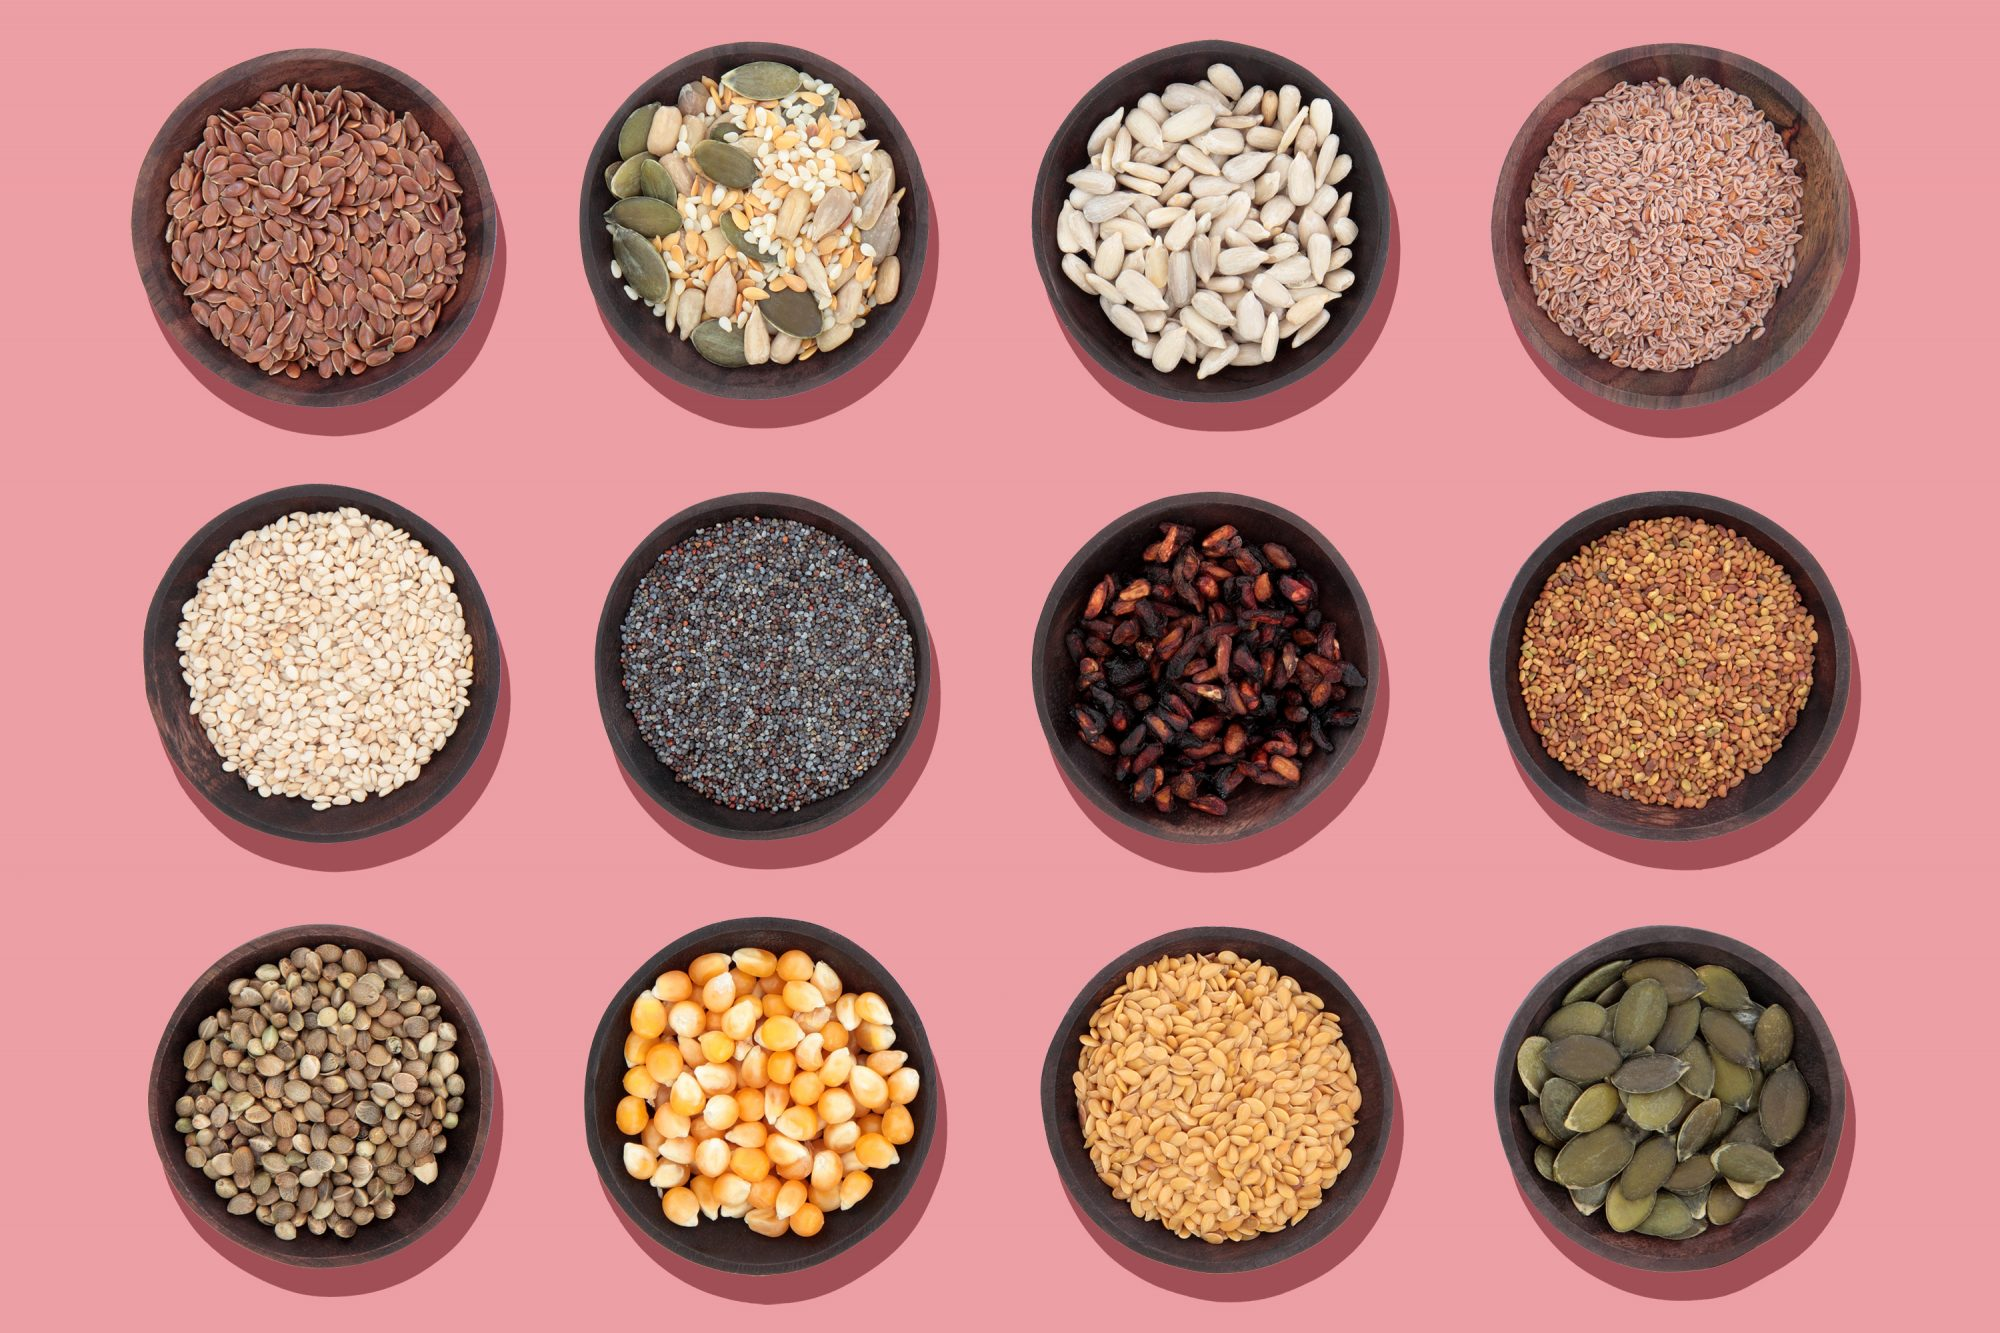 These Are the Healthiest Types of Seeds